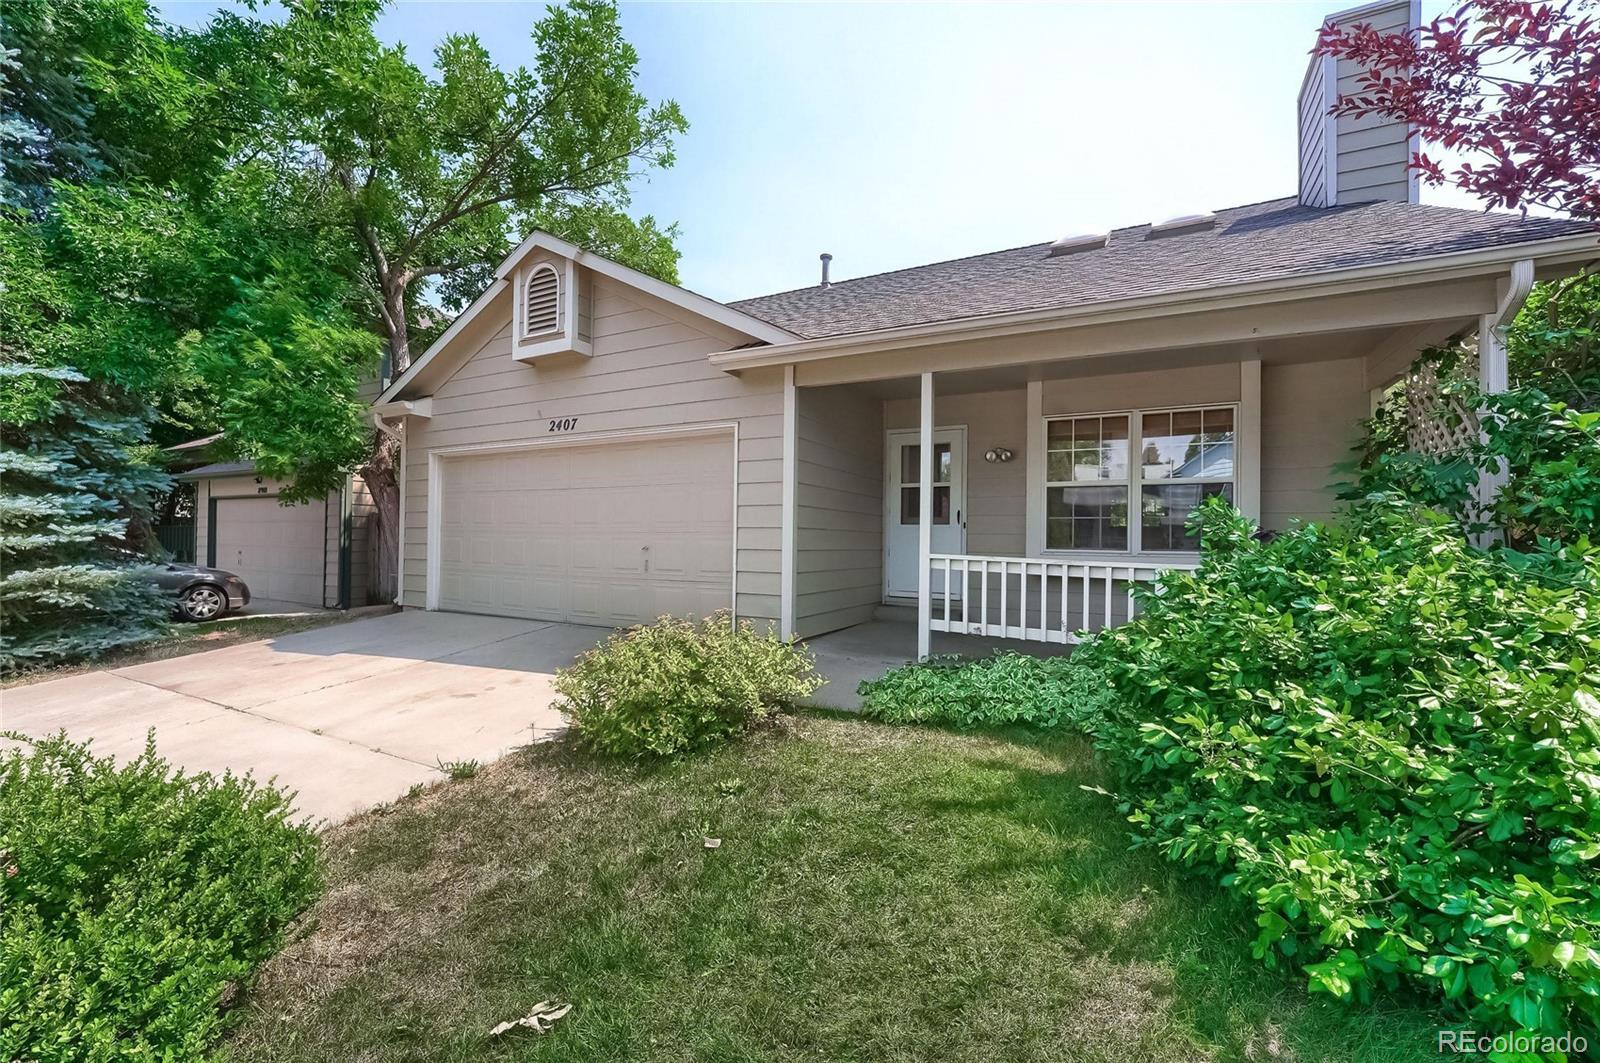 2407 Valley Forge Avenue, Fort Collins, CO 80526 - #: 5189830